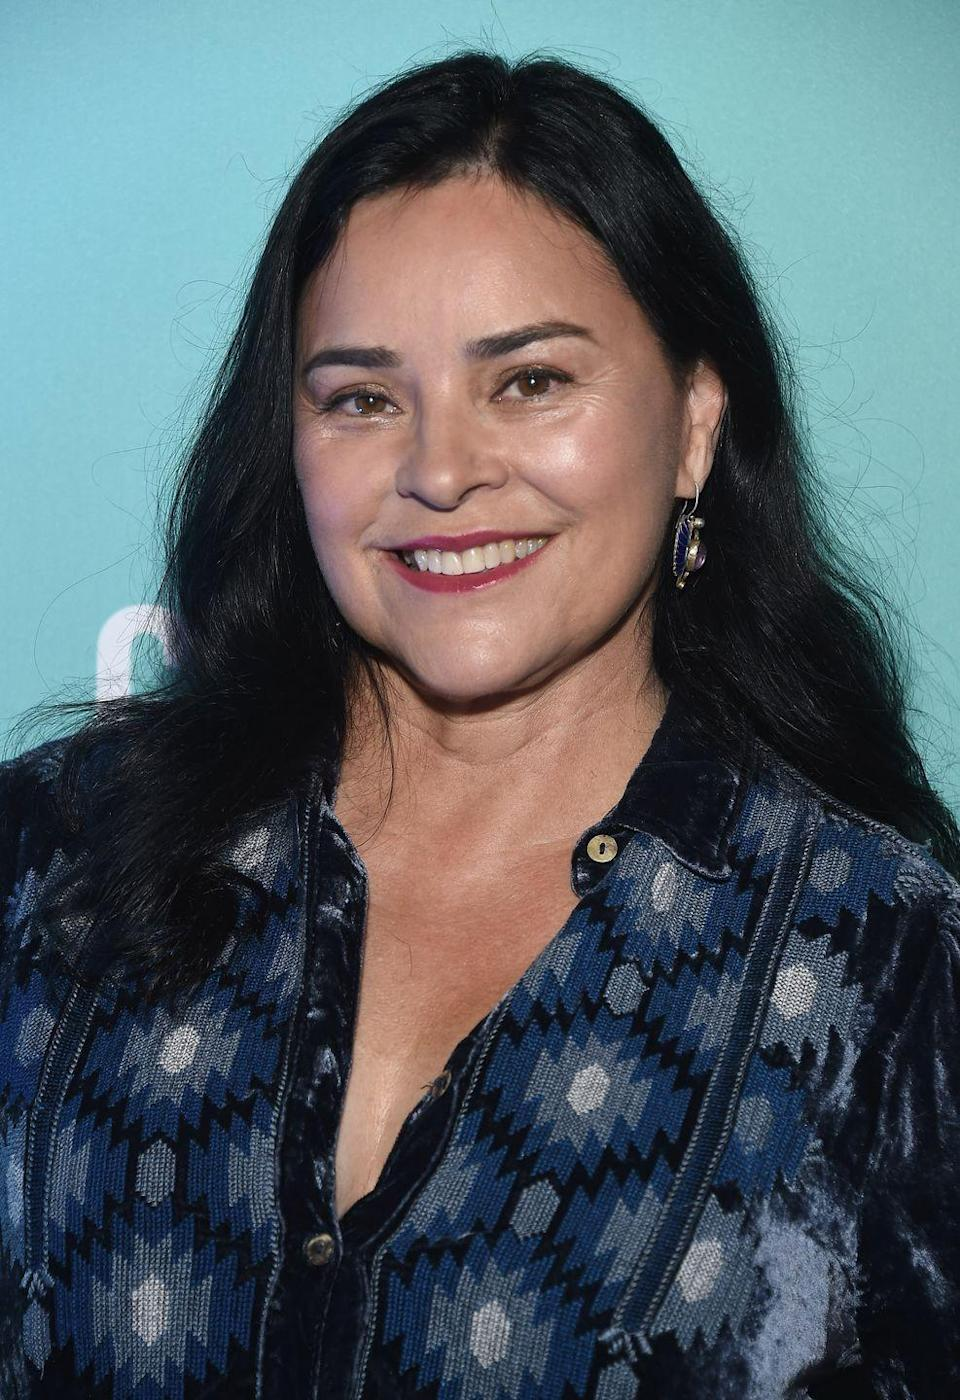 """<p>""""I knew I was supposed to be a novelist, but I didn't know how, and I decided the way to learn was to actually write a novel. So, <em>Outlander</em> was my practice book,"""" <a href=""""https://collider.com/diana-gabaldon-outlander-interview/"""" rel=""""nofollow noopener"""" target=""""_blank"""" data-ylk=""""slk:she said at the TCA press day"""" class=""""link rapid-noclick-resp"""">she said at the TCA press day </a>for the PBS series <em>The Great American Read</em>. """"I was never going to show it to anyone, so it didn't matter what I did with it.""""</p>"""